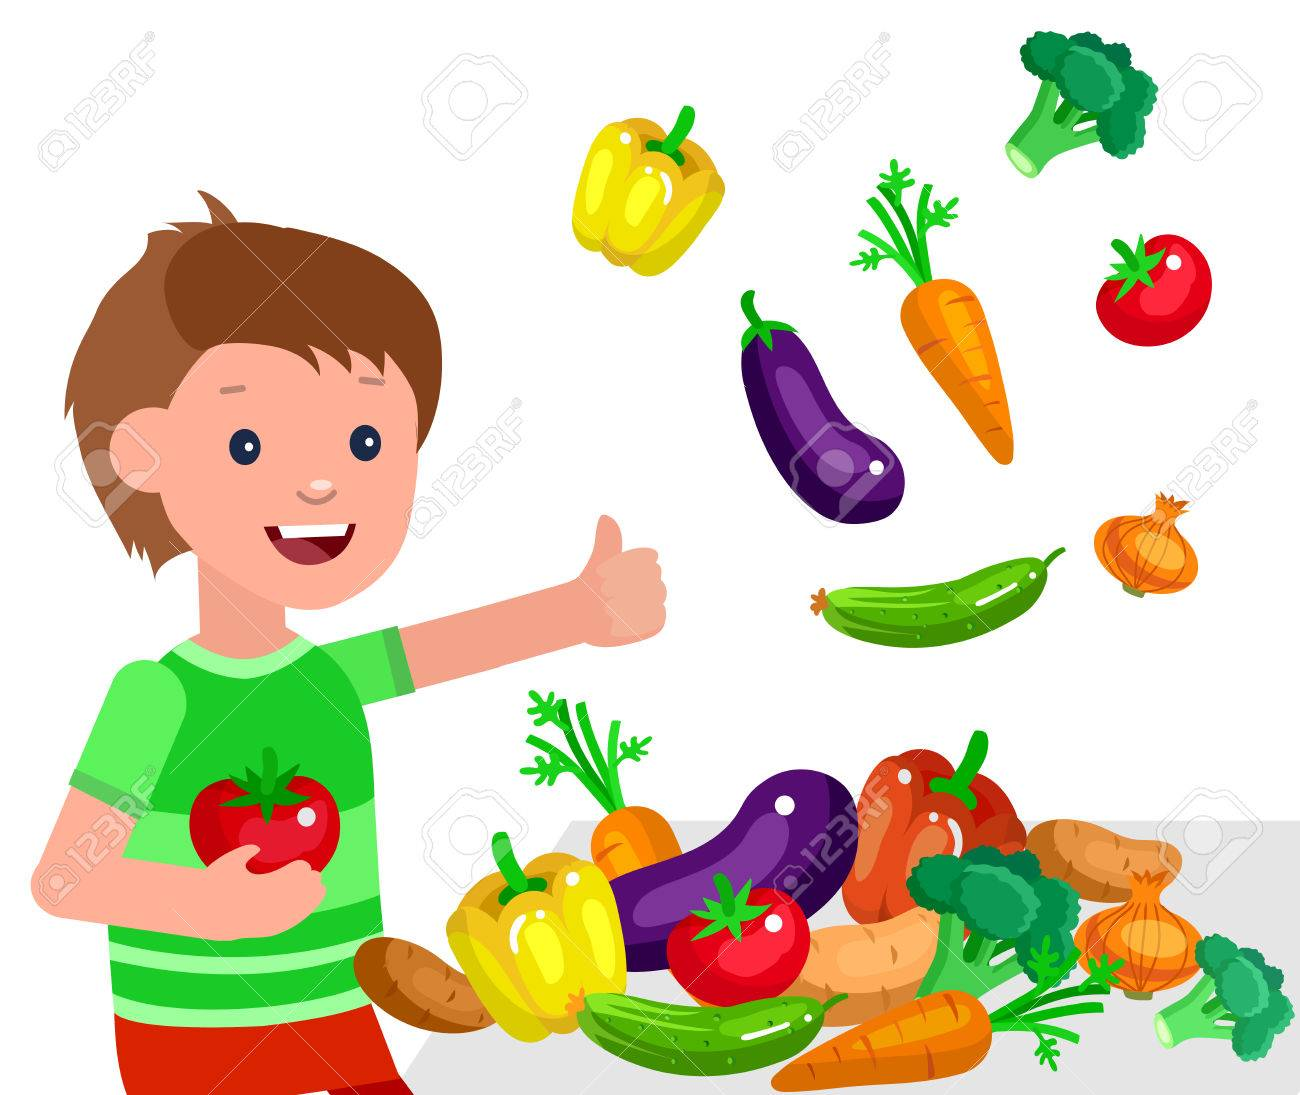 Cute Vector Character Child And Healthy Food Child Boy With Royalty Free Cliparts Vectors And Stock Illustration Image 57326998